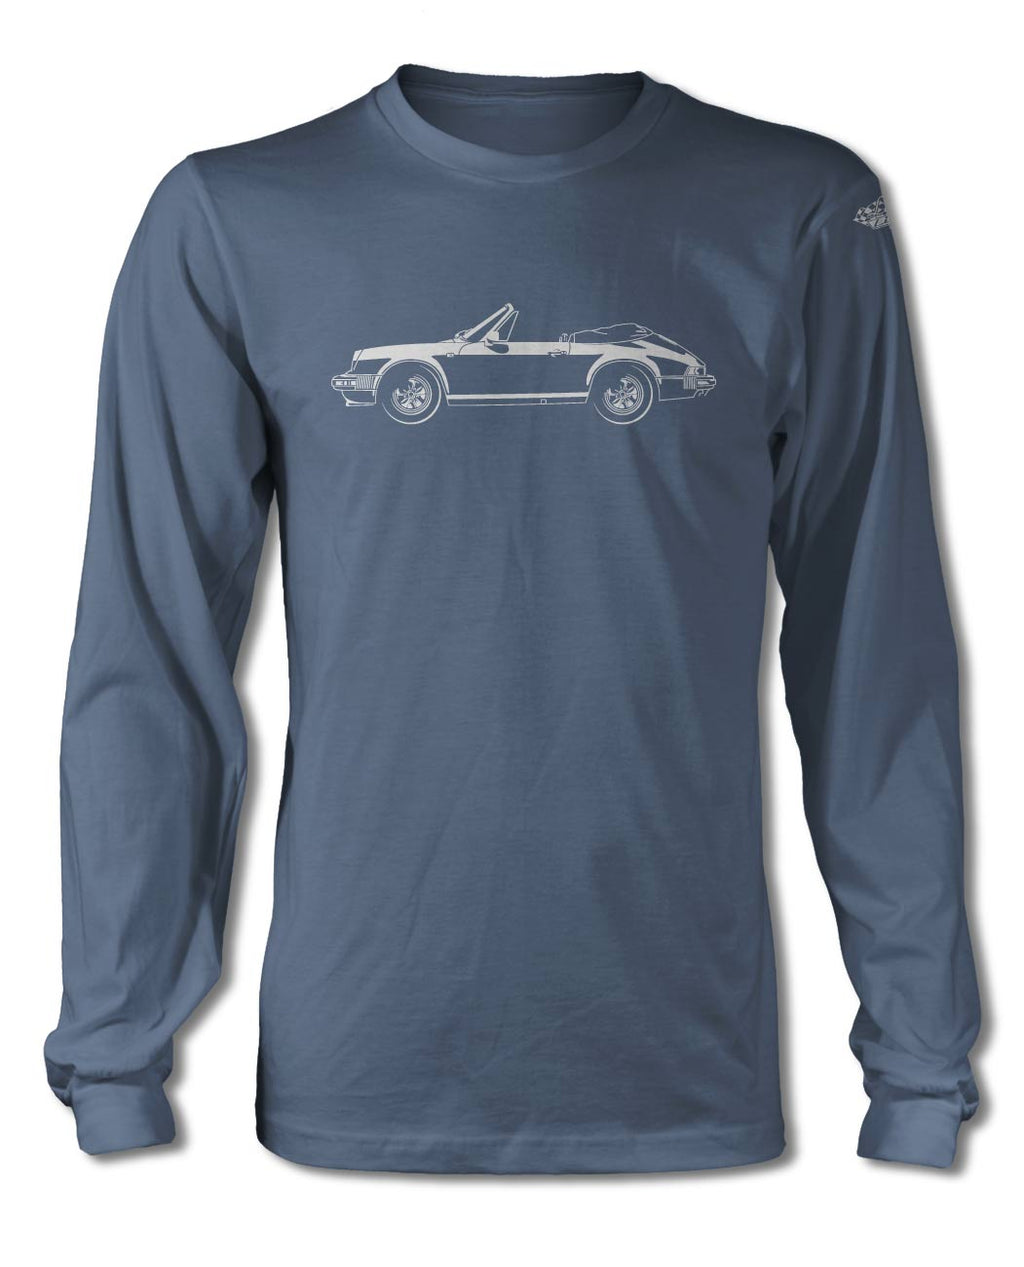 Porsche 911 Convertible Cabriolet T-Shirt - Long Sleeves - Side View